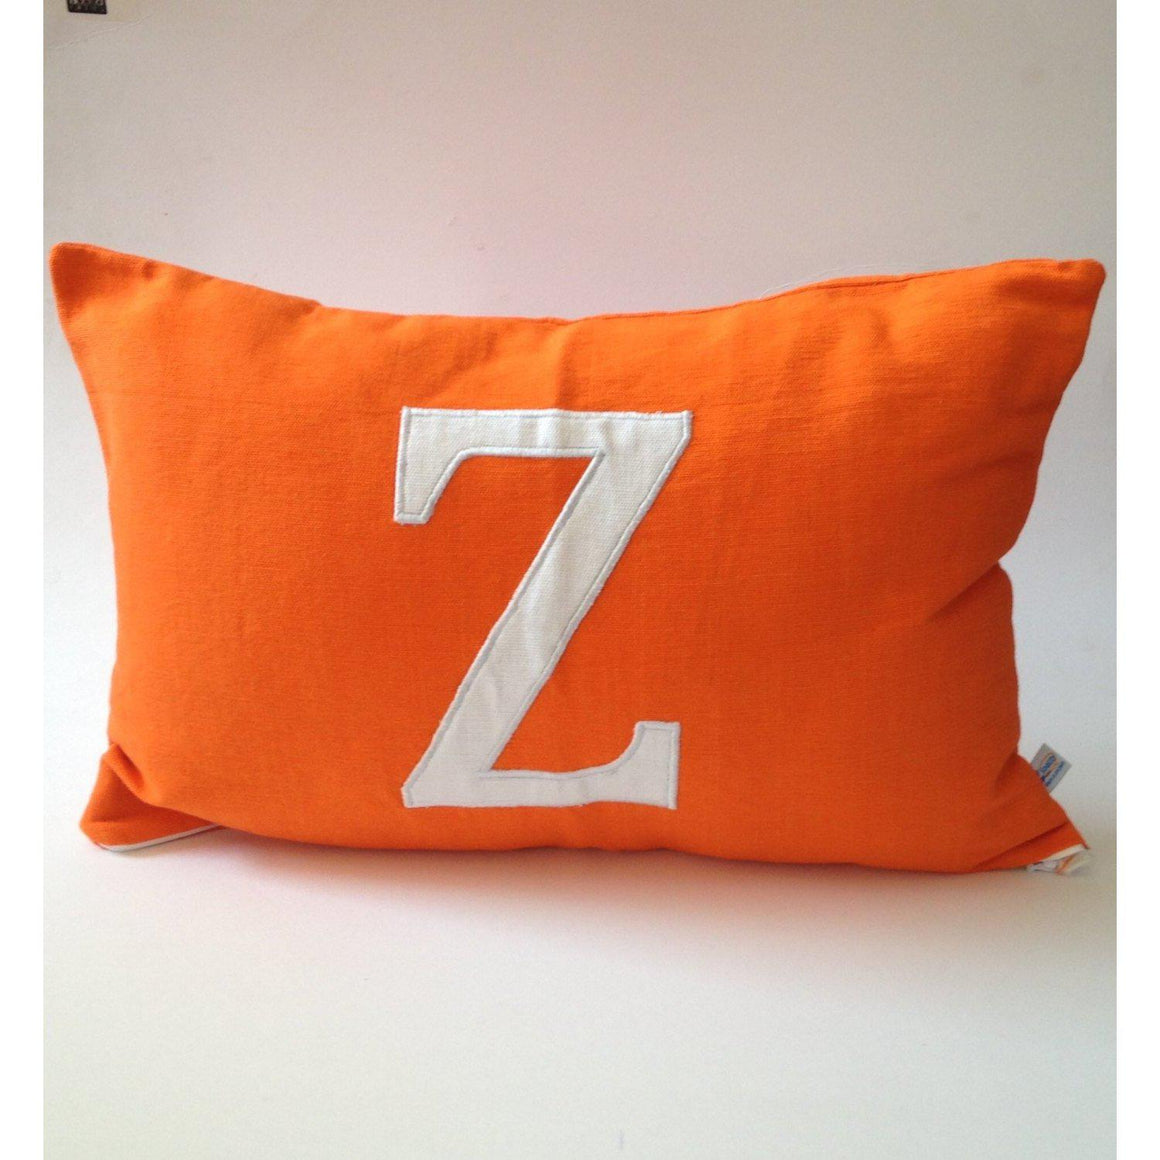 Gift for Women, Throw pillows orange, Monogram holiday pillows, Halloween Decor, Orange pillows, Orange soda pillows - Snazzy Living